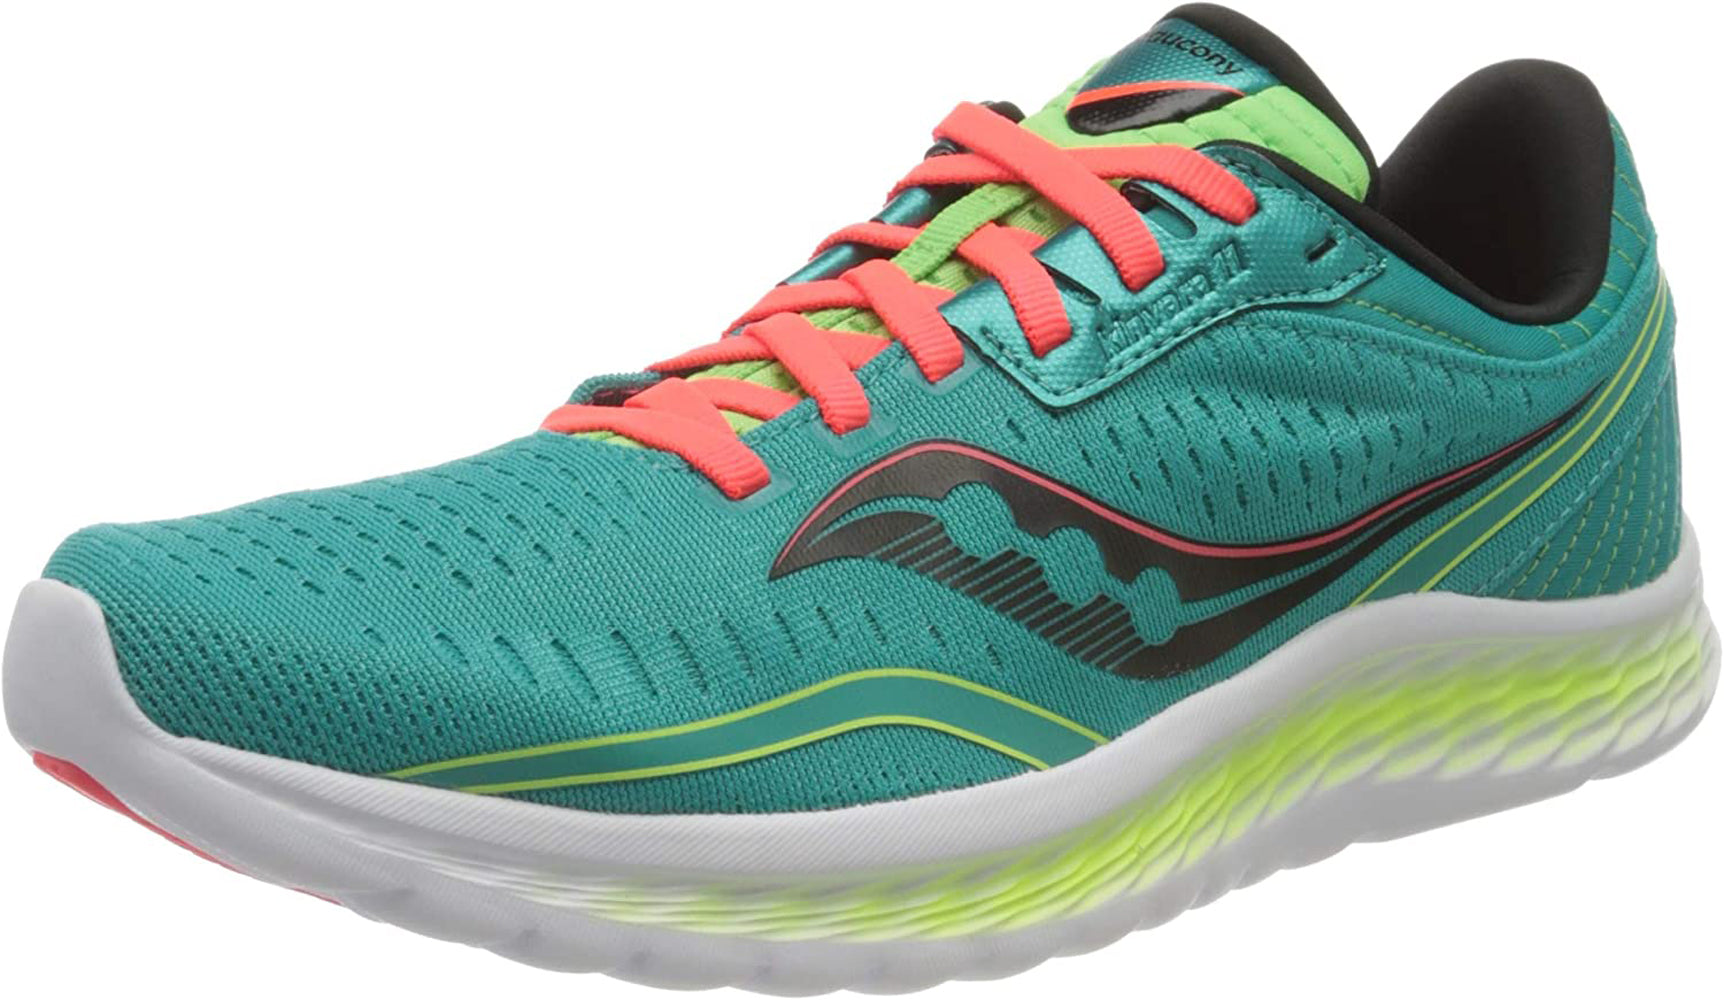 Saucony Women's Kinvara 11 Running Shoe in Blue Mutant Side Angle View